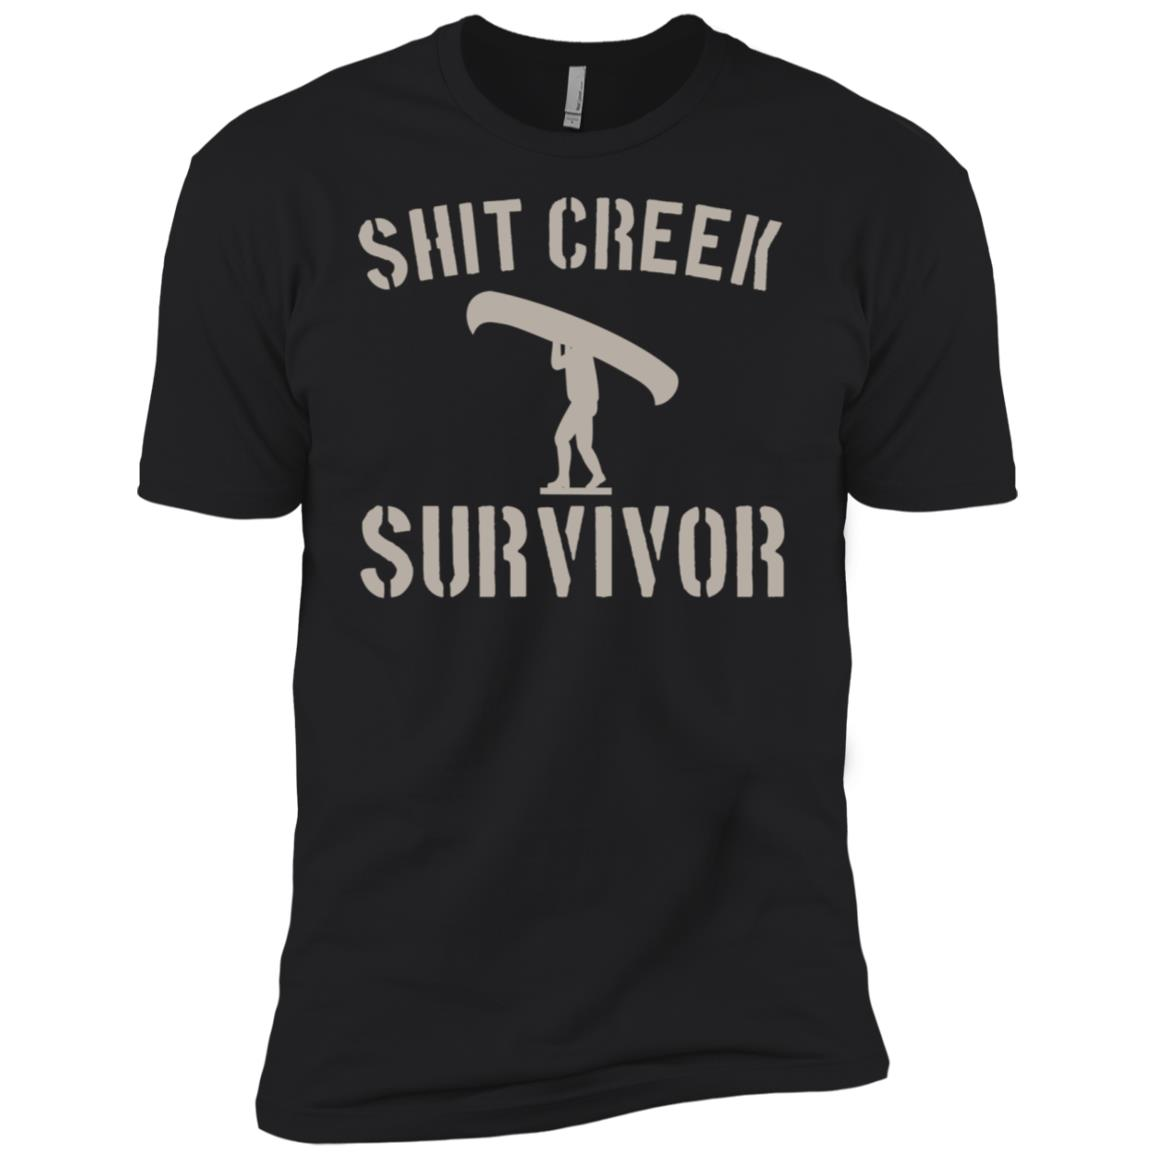 Shit Creek Survivor Funny Bad Luck Men Short Sleeve T-Shirt